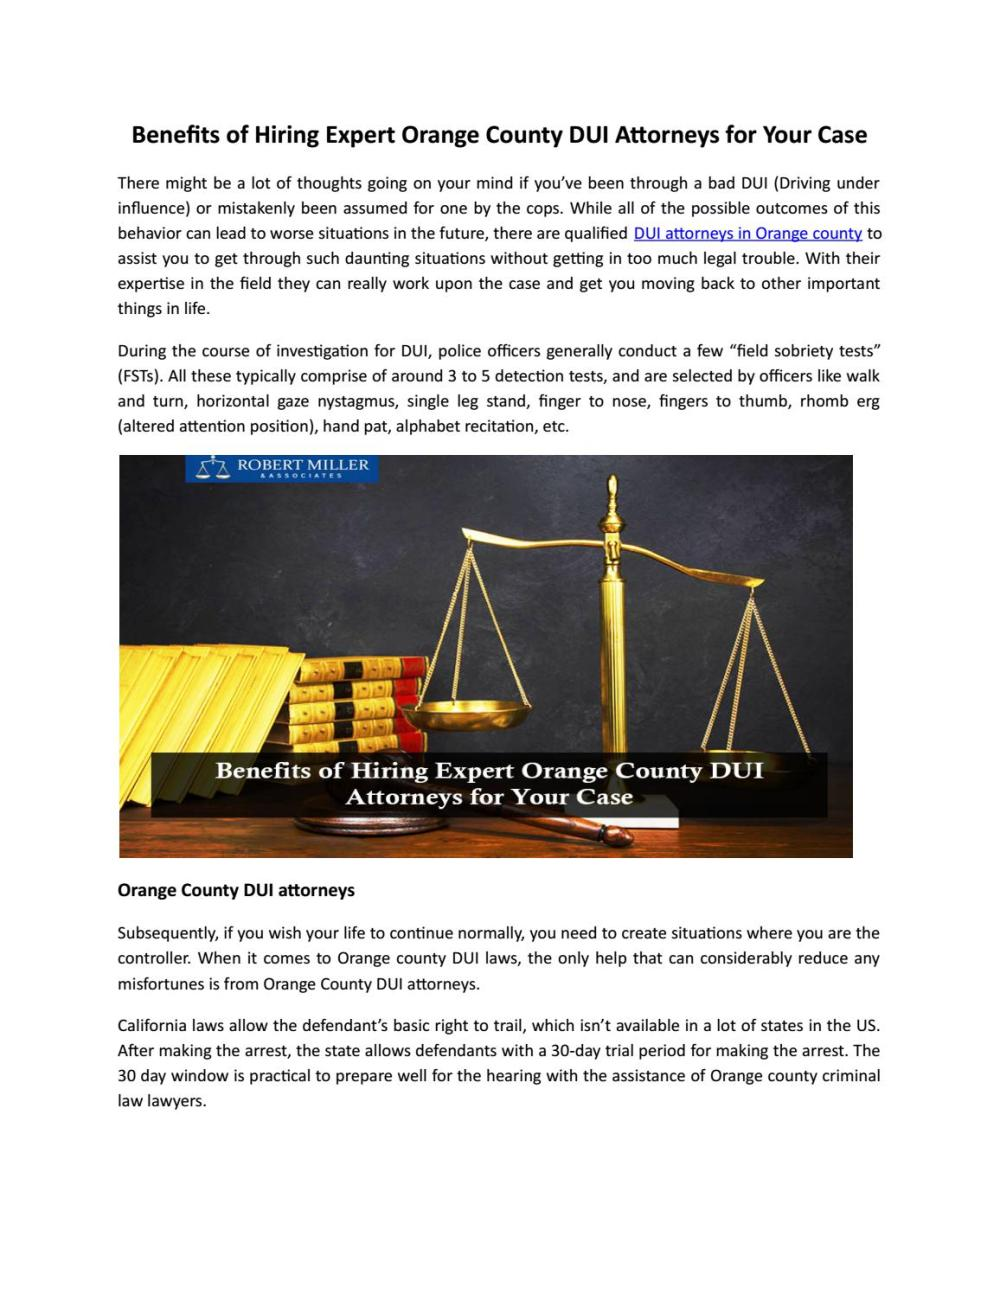 medium resolution of benefits of hiring expert orange county dui attorneys for your case by robert miller associates issuu